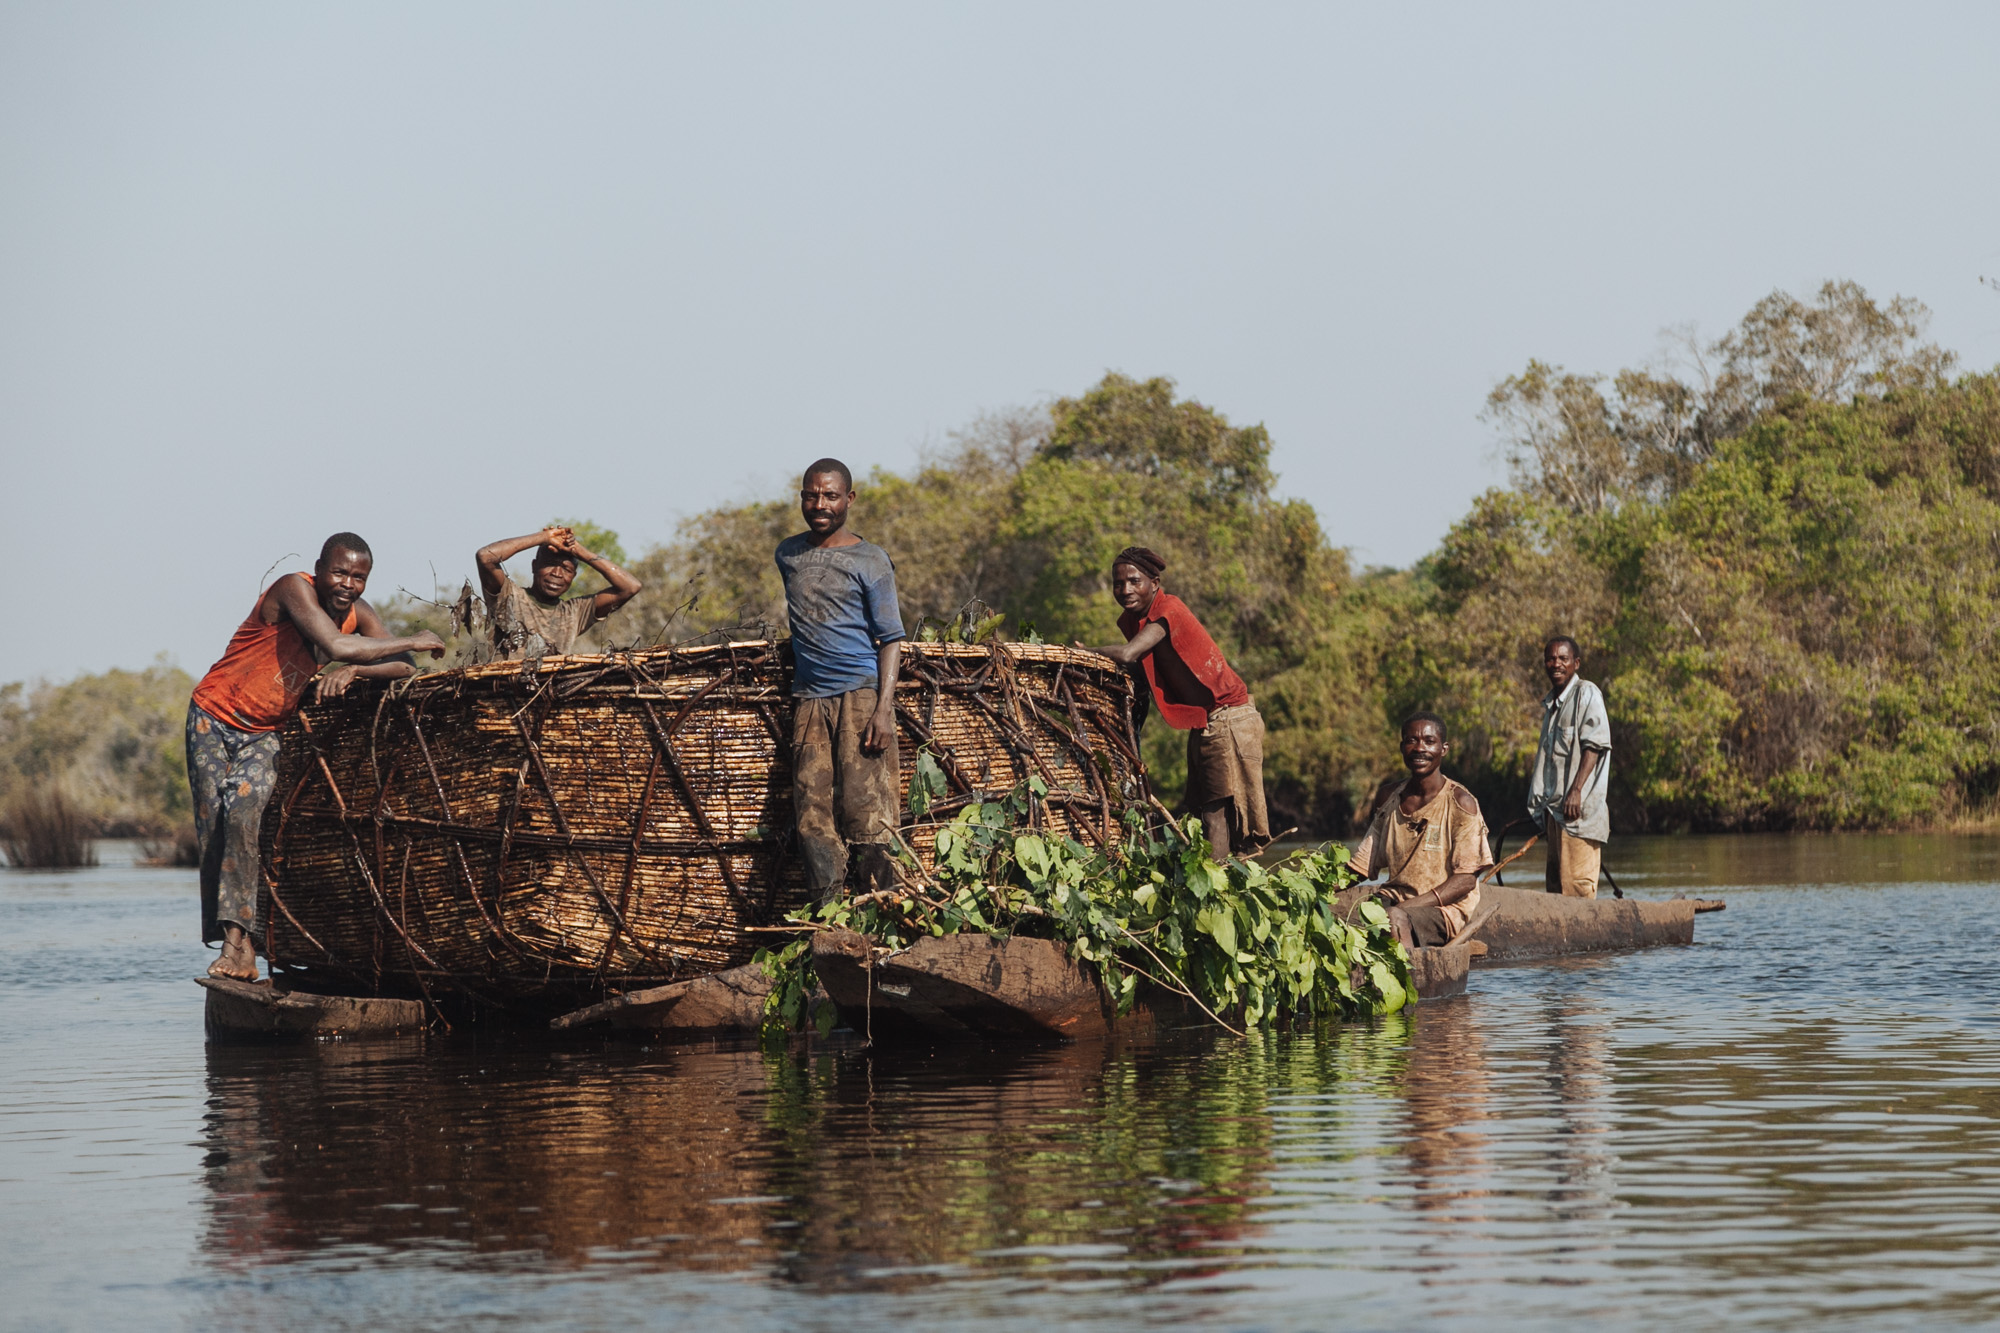 FIshermen gather vegetation to place in their fish nursery.